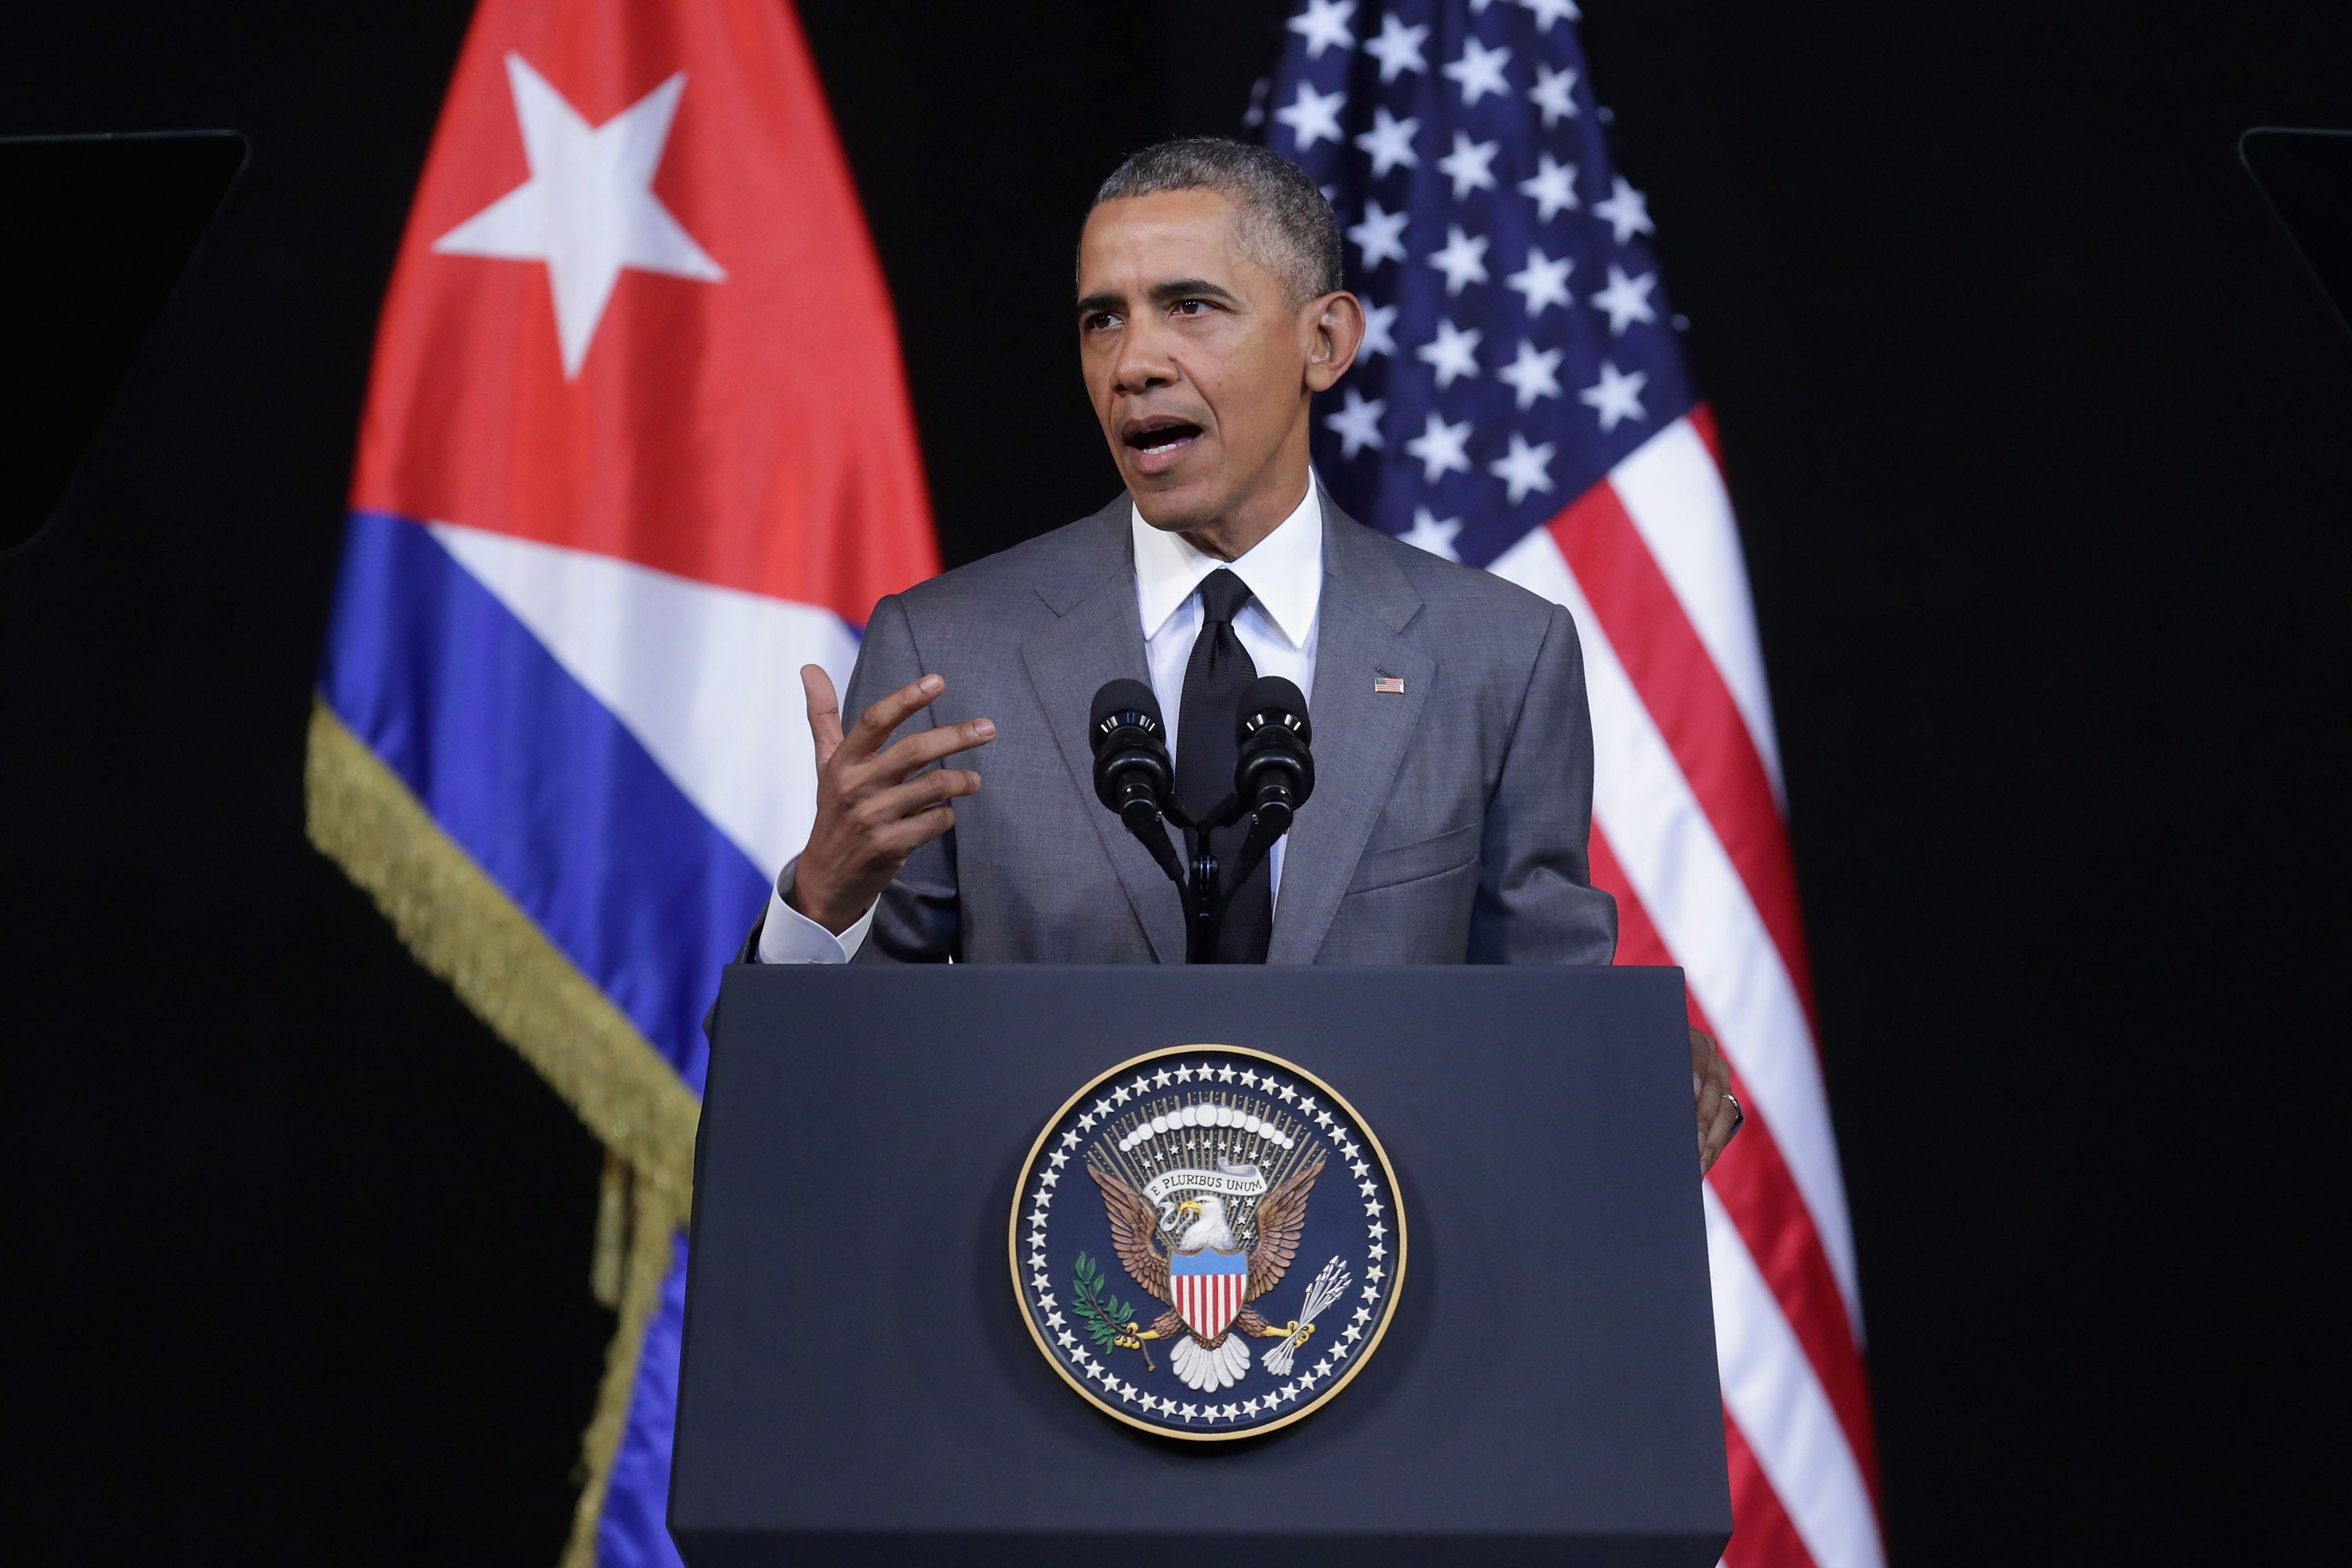 13 Ways President Obama Historically Improved U.S. Relations With Cuba